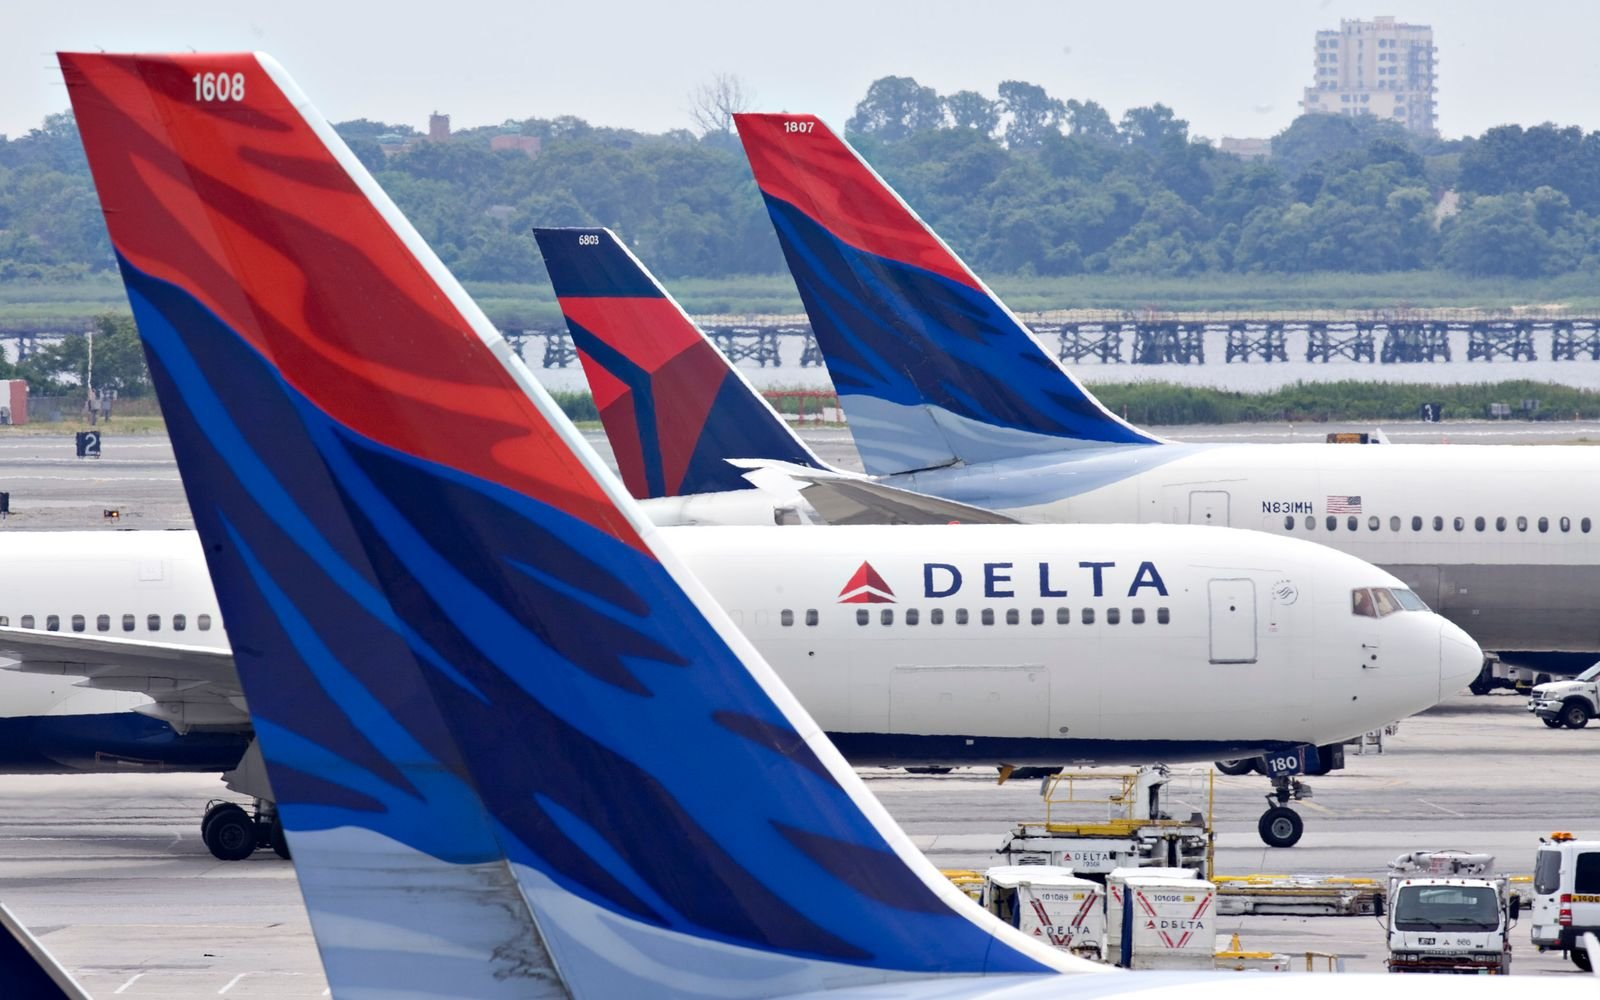 Delta Airlines in Portland